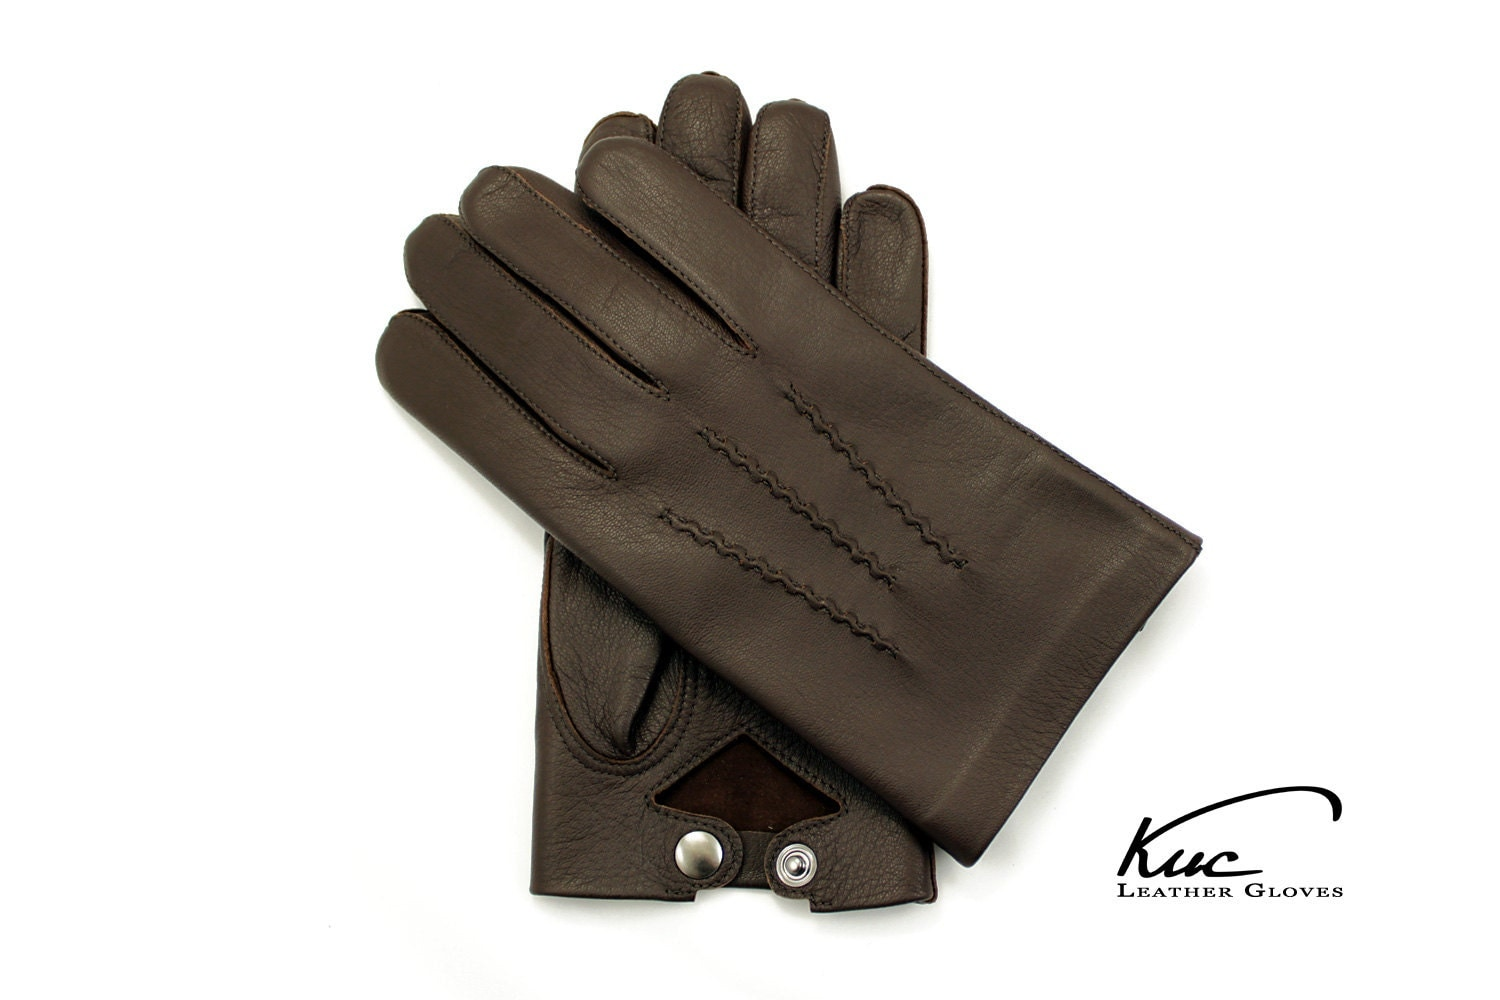 Leather driving gloves gold coast - Mens Unlined Leather Gloves Officer Gloves With Popper Wrist Fastener Police Gloves Very Comfortable And Elegant Soft Nappa Leather